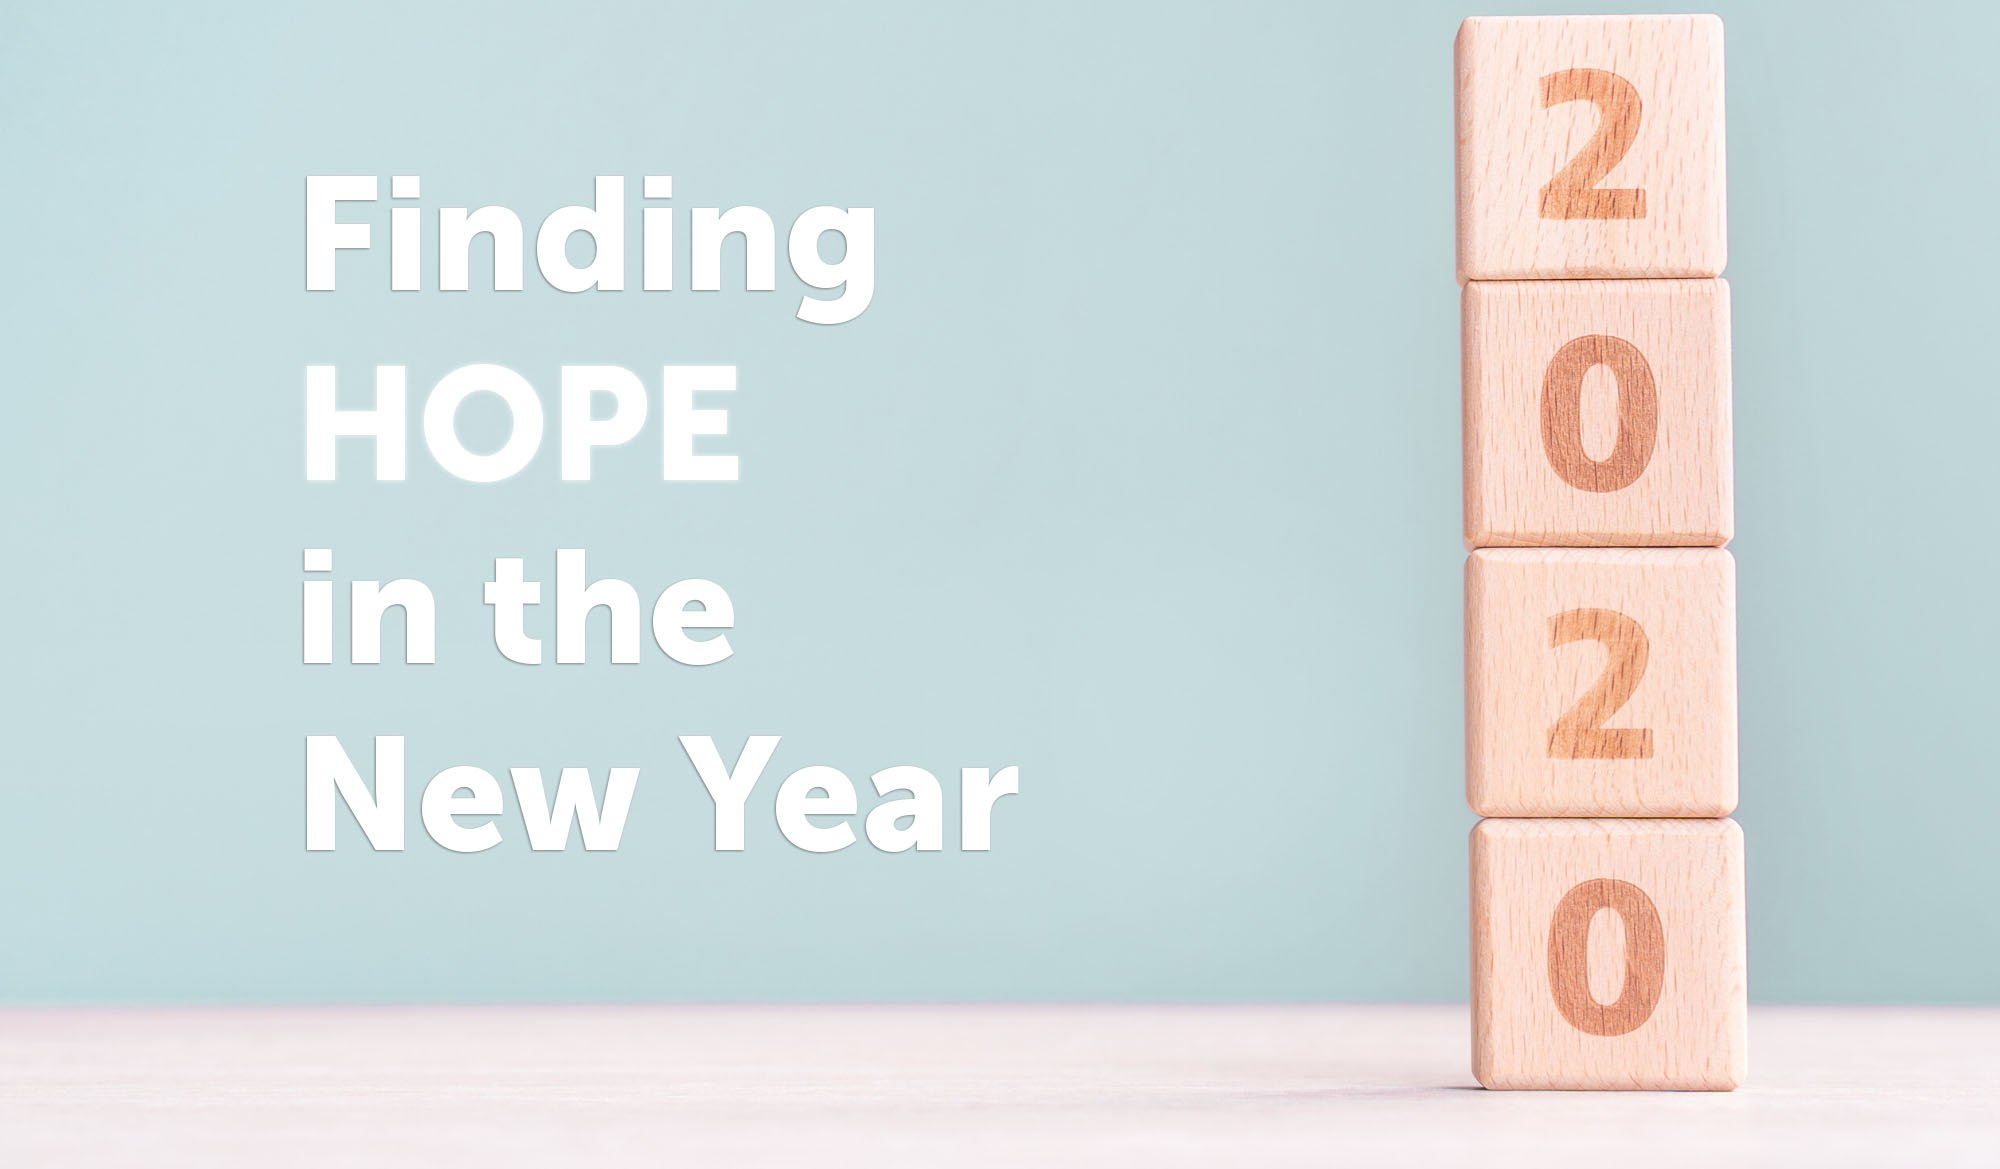 Finding HOPE in the New Year